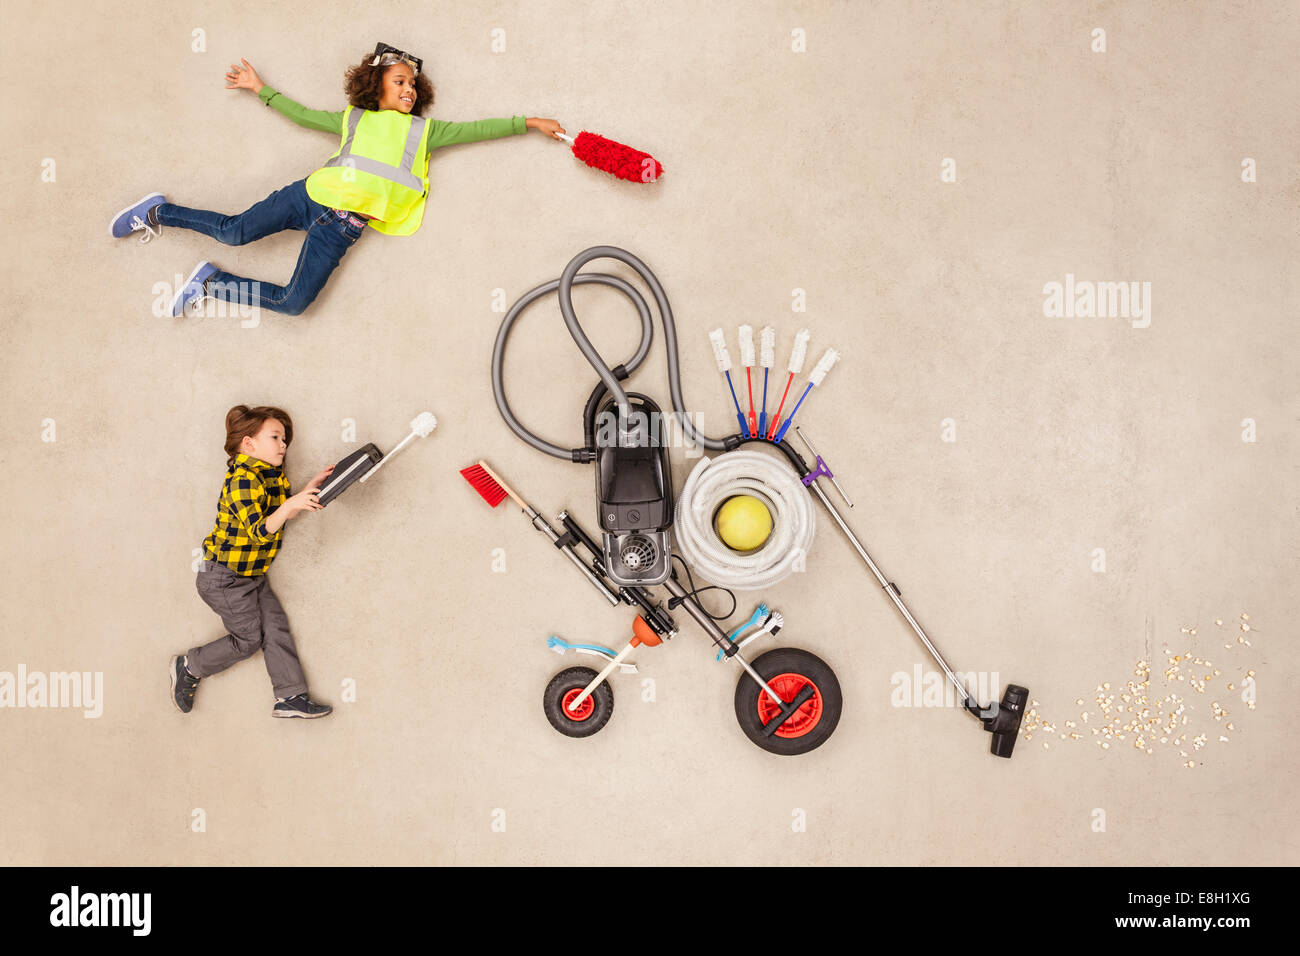 Children developing new household gadgets - Stock Image